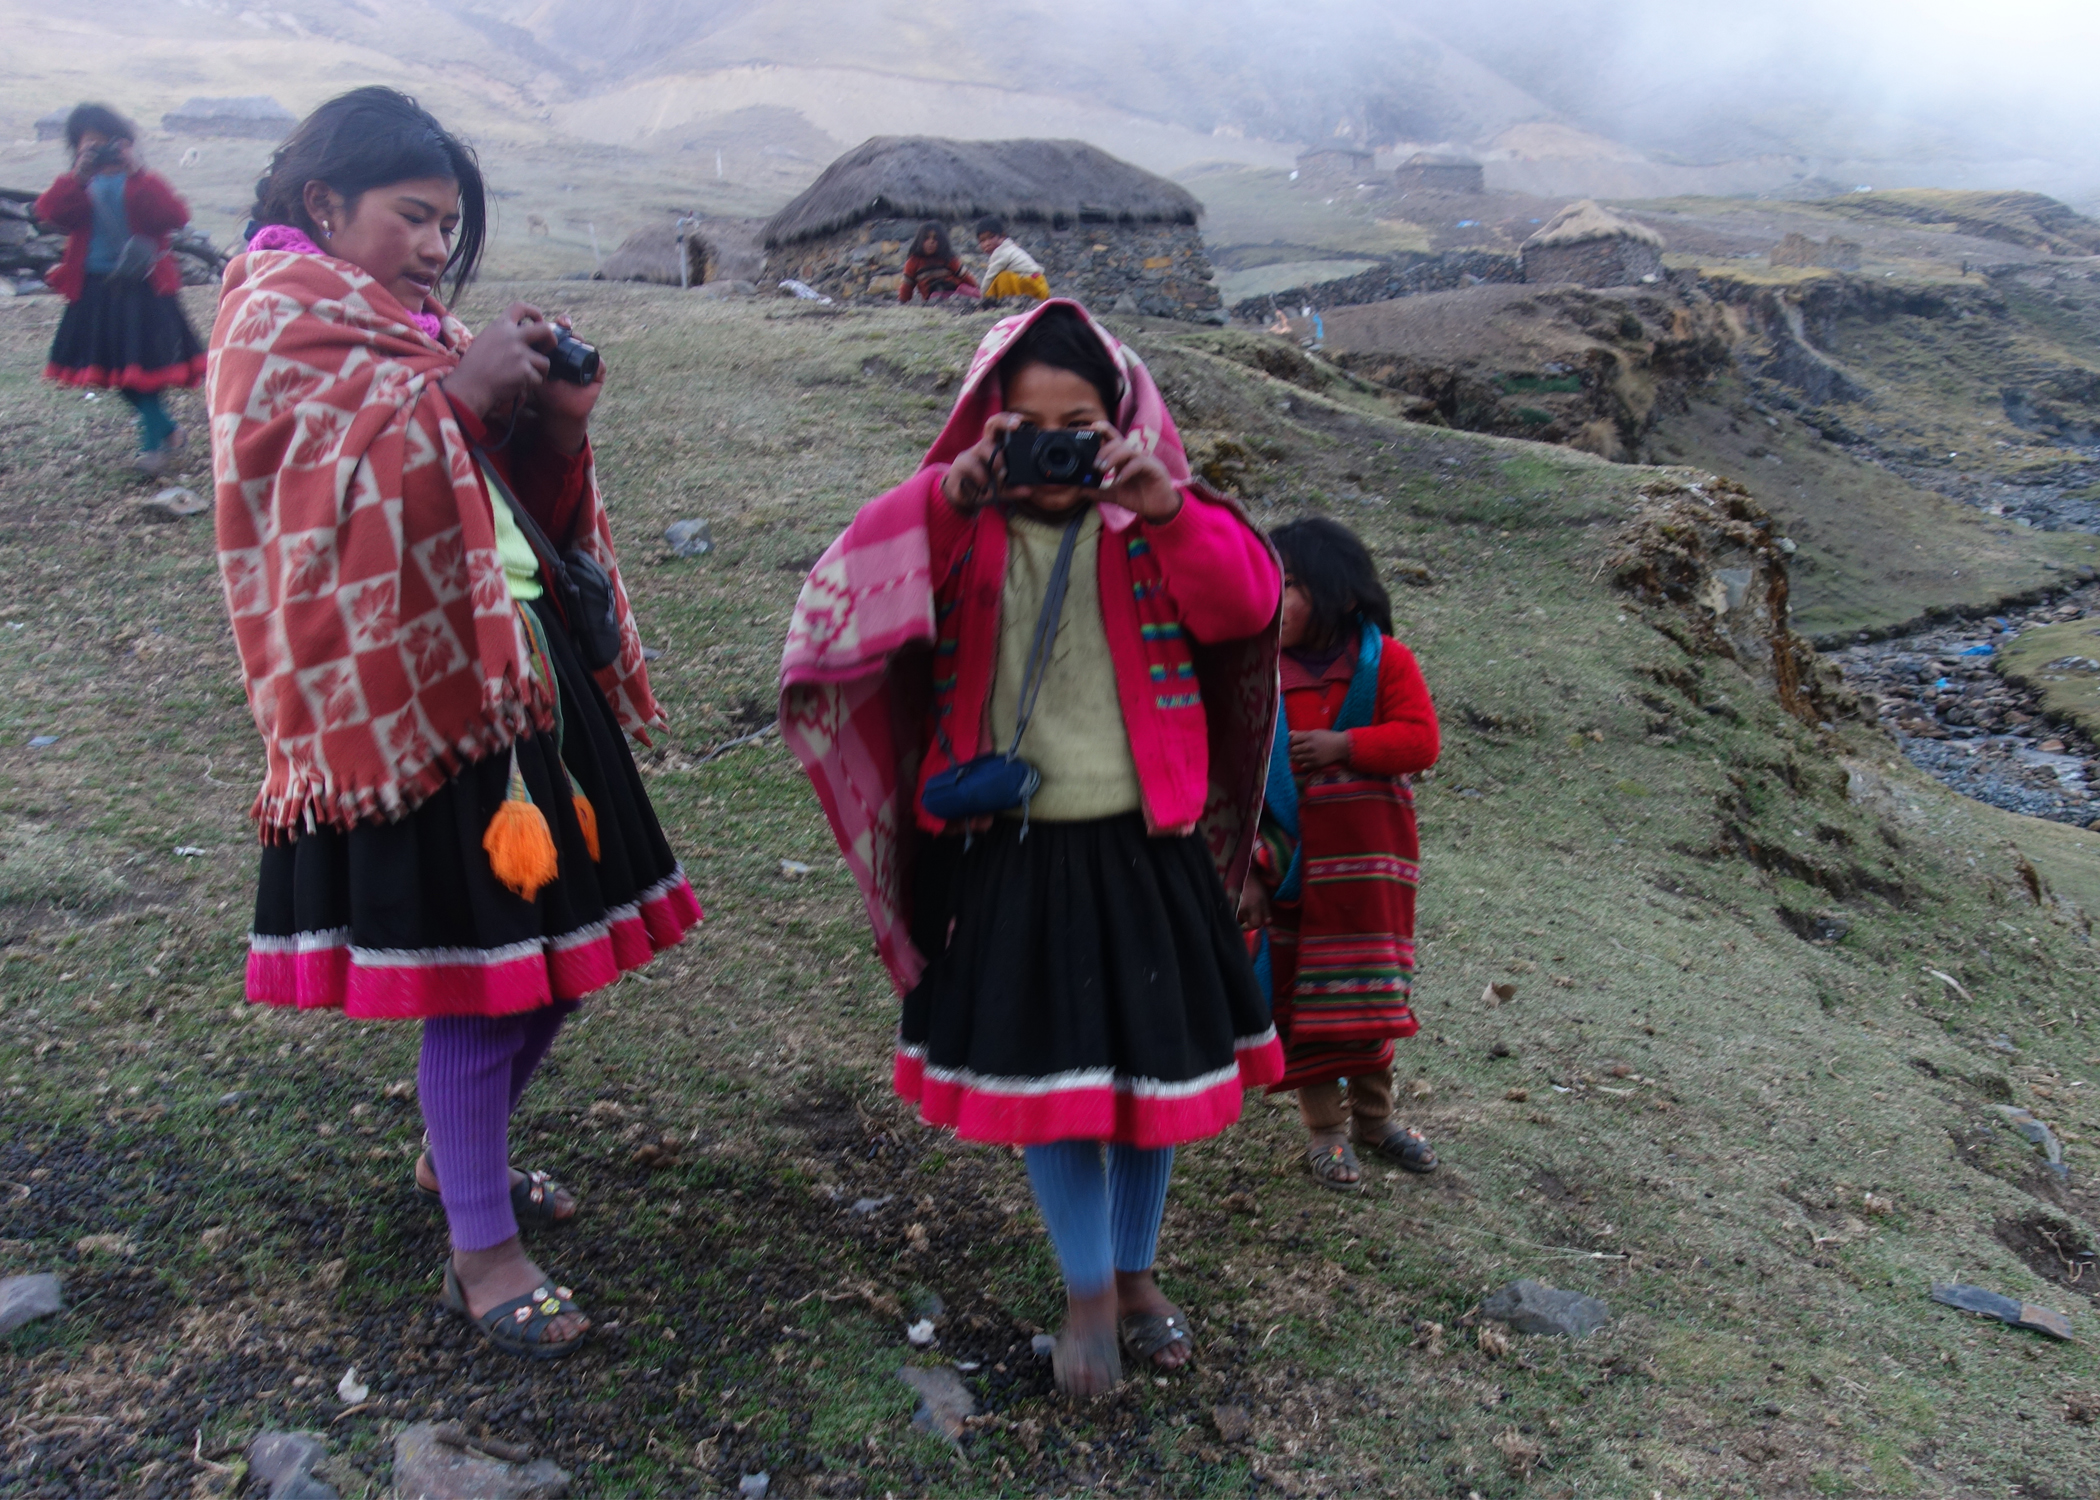 Sneak peak from our Snapshot Project in the mountaintops of Peru that is coming soon!